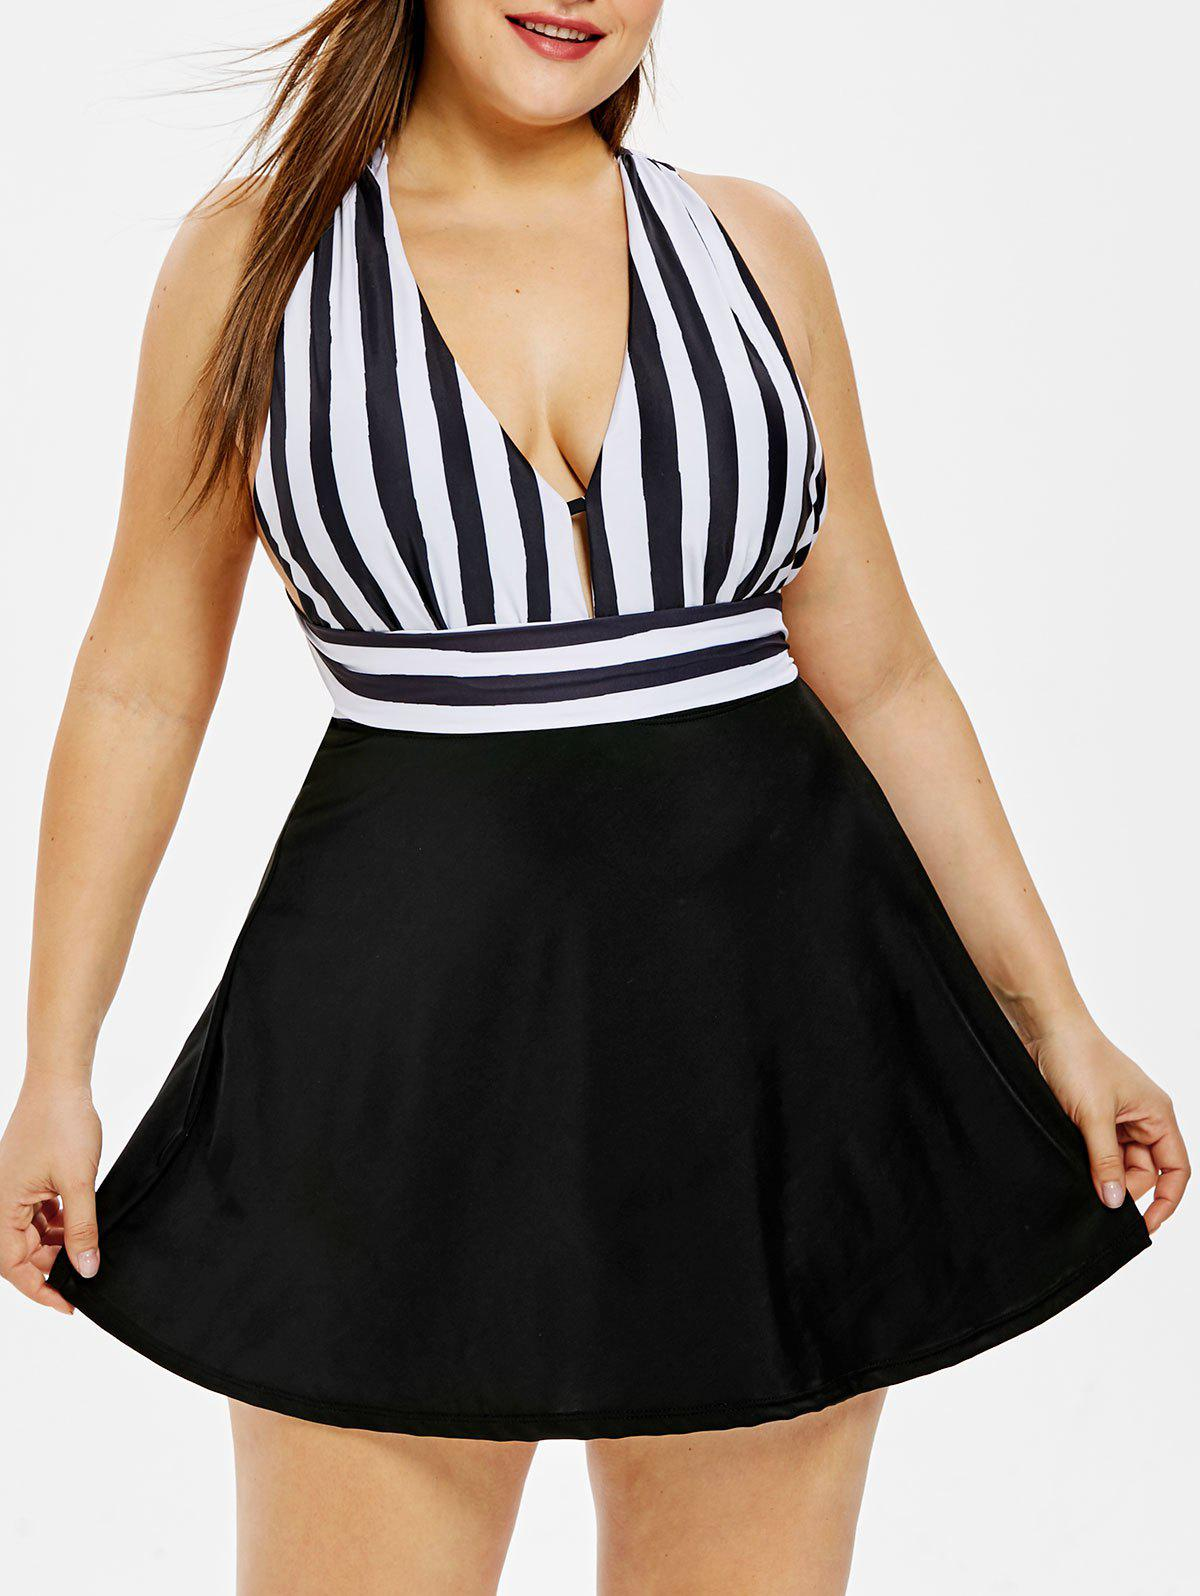 Hot Plunging Neck Plus Size Striped One Piece Swimsuit